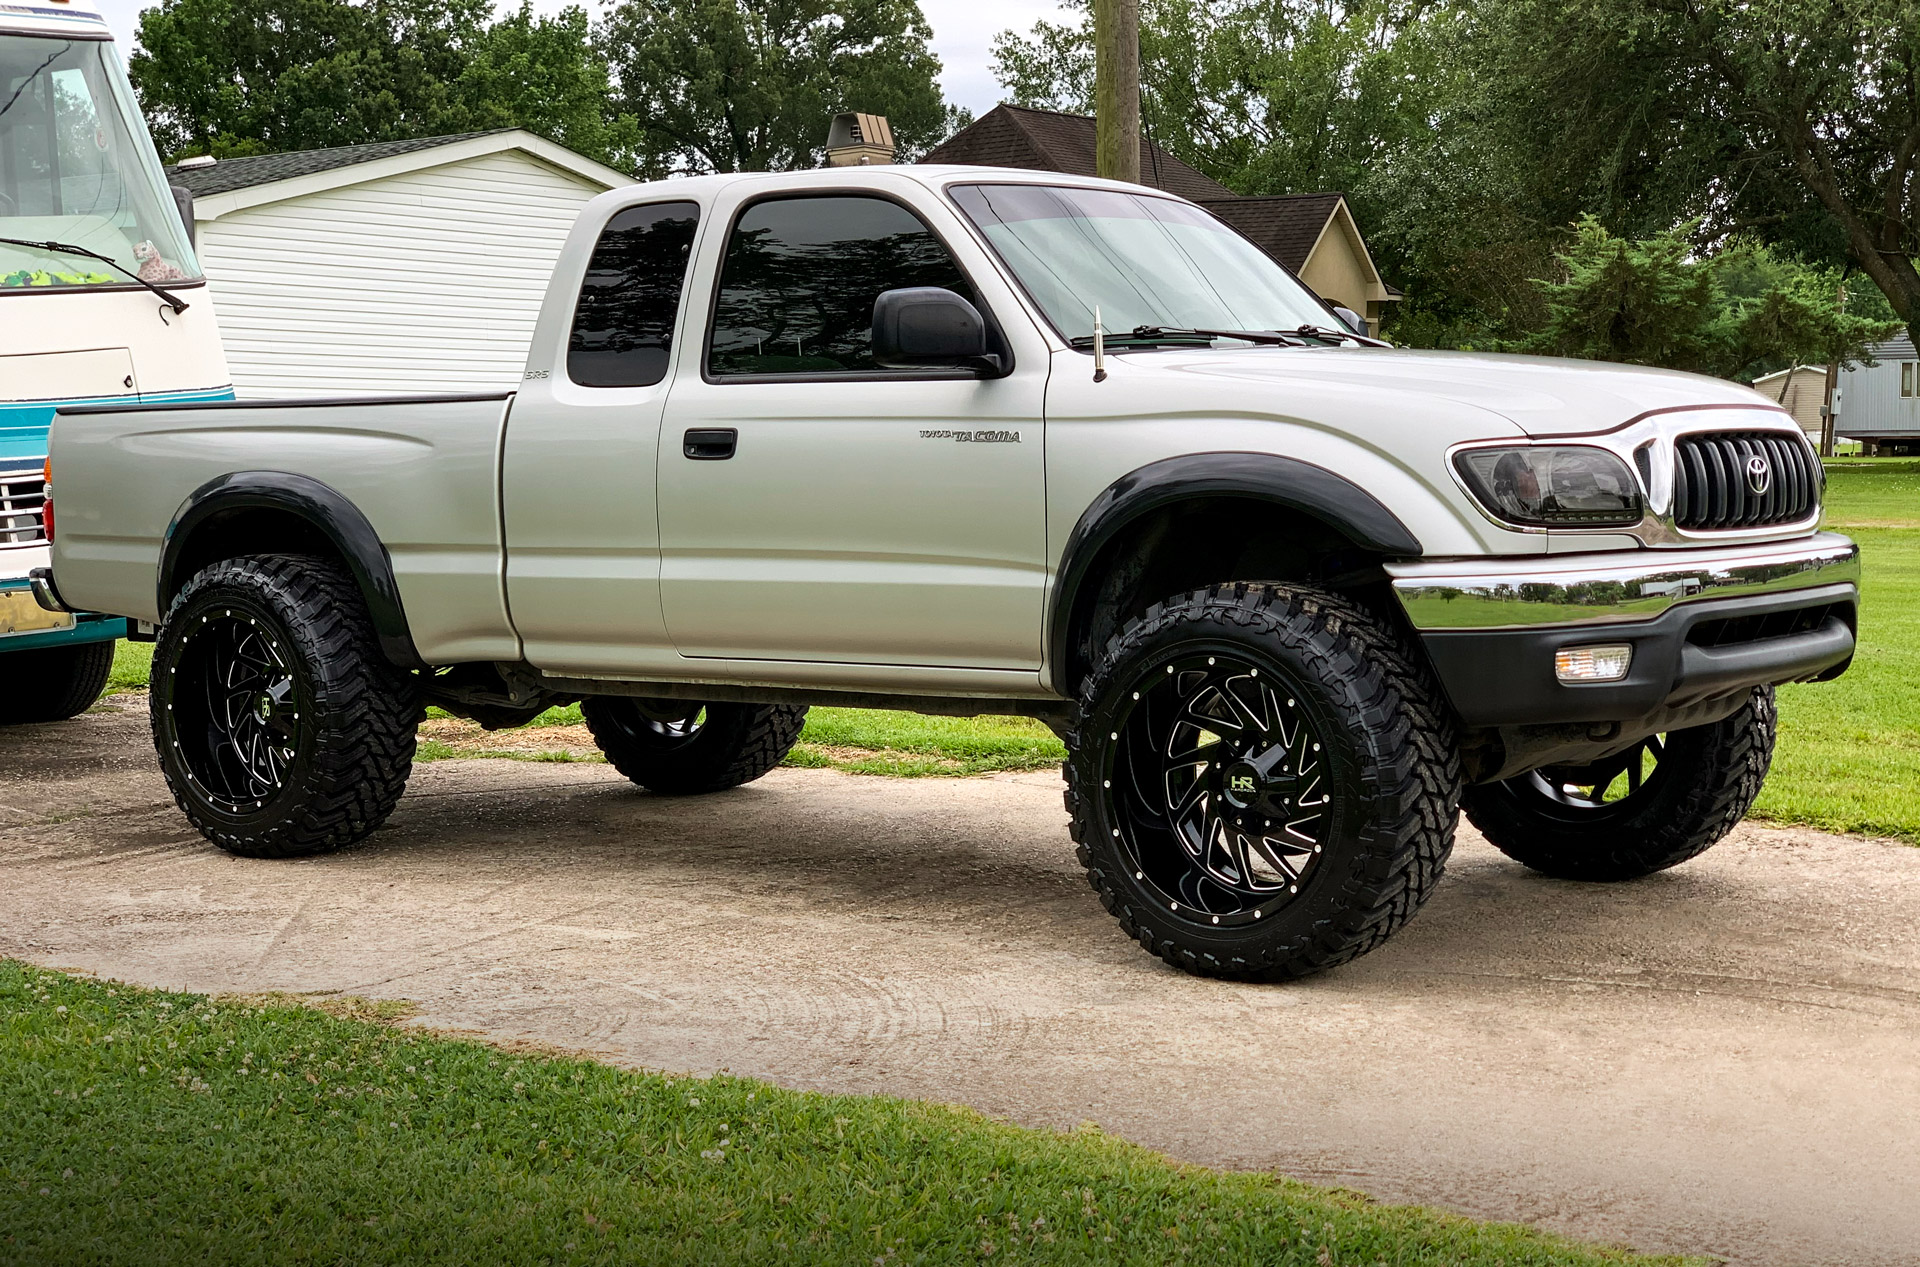 H704 Crusher 20x12 Lifted Toyota Tacoma